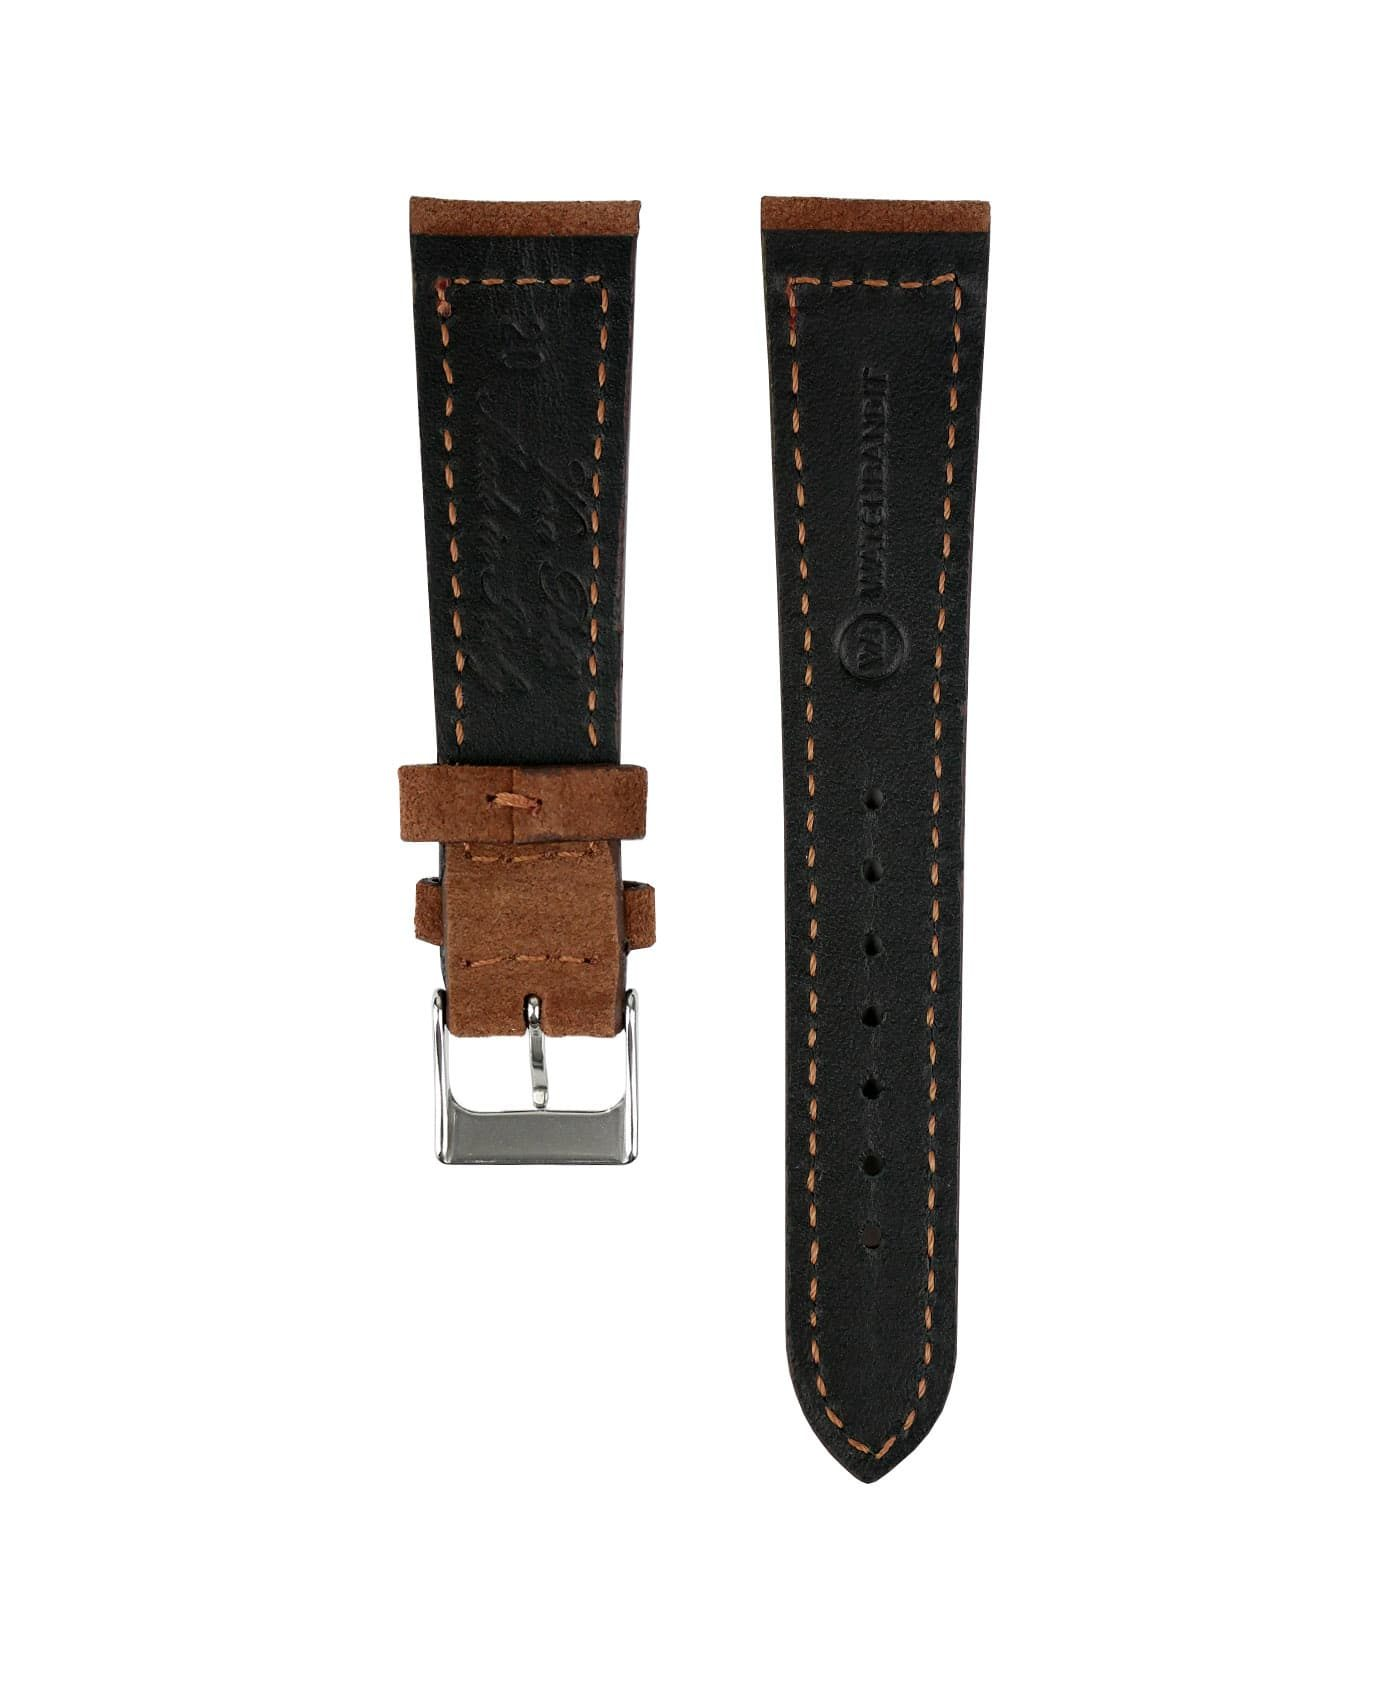 Suede leather strap with side seam_brown_back